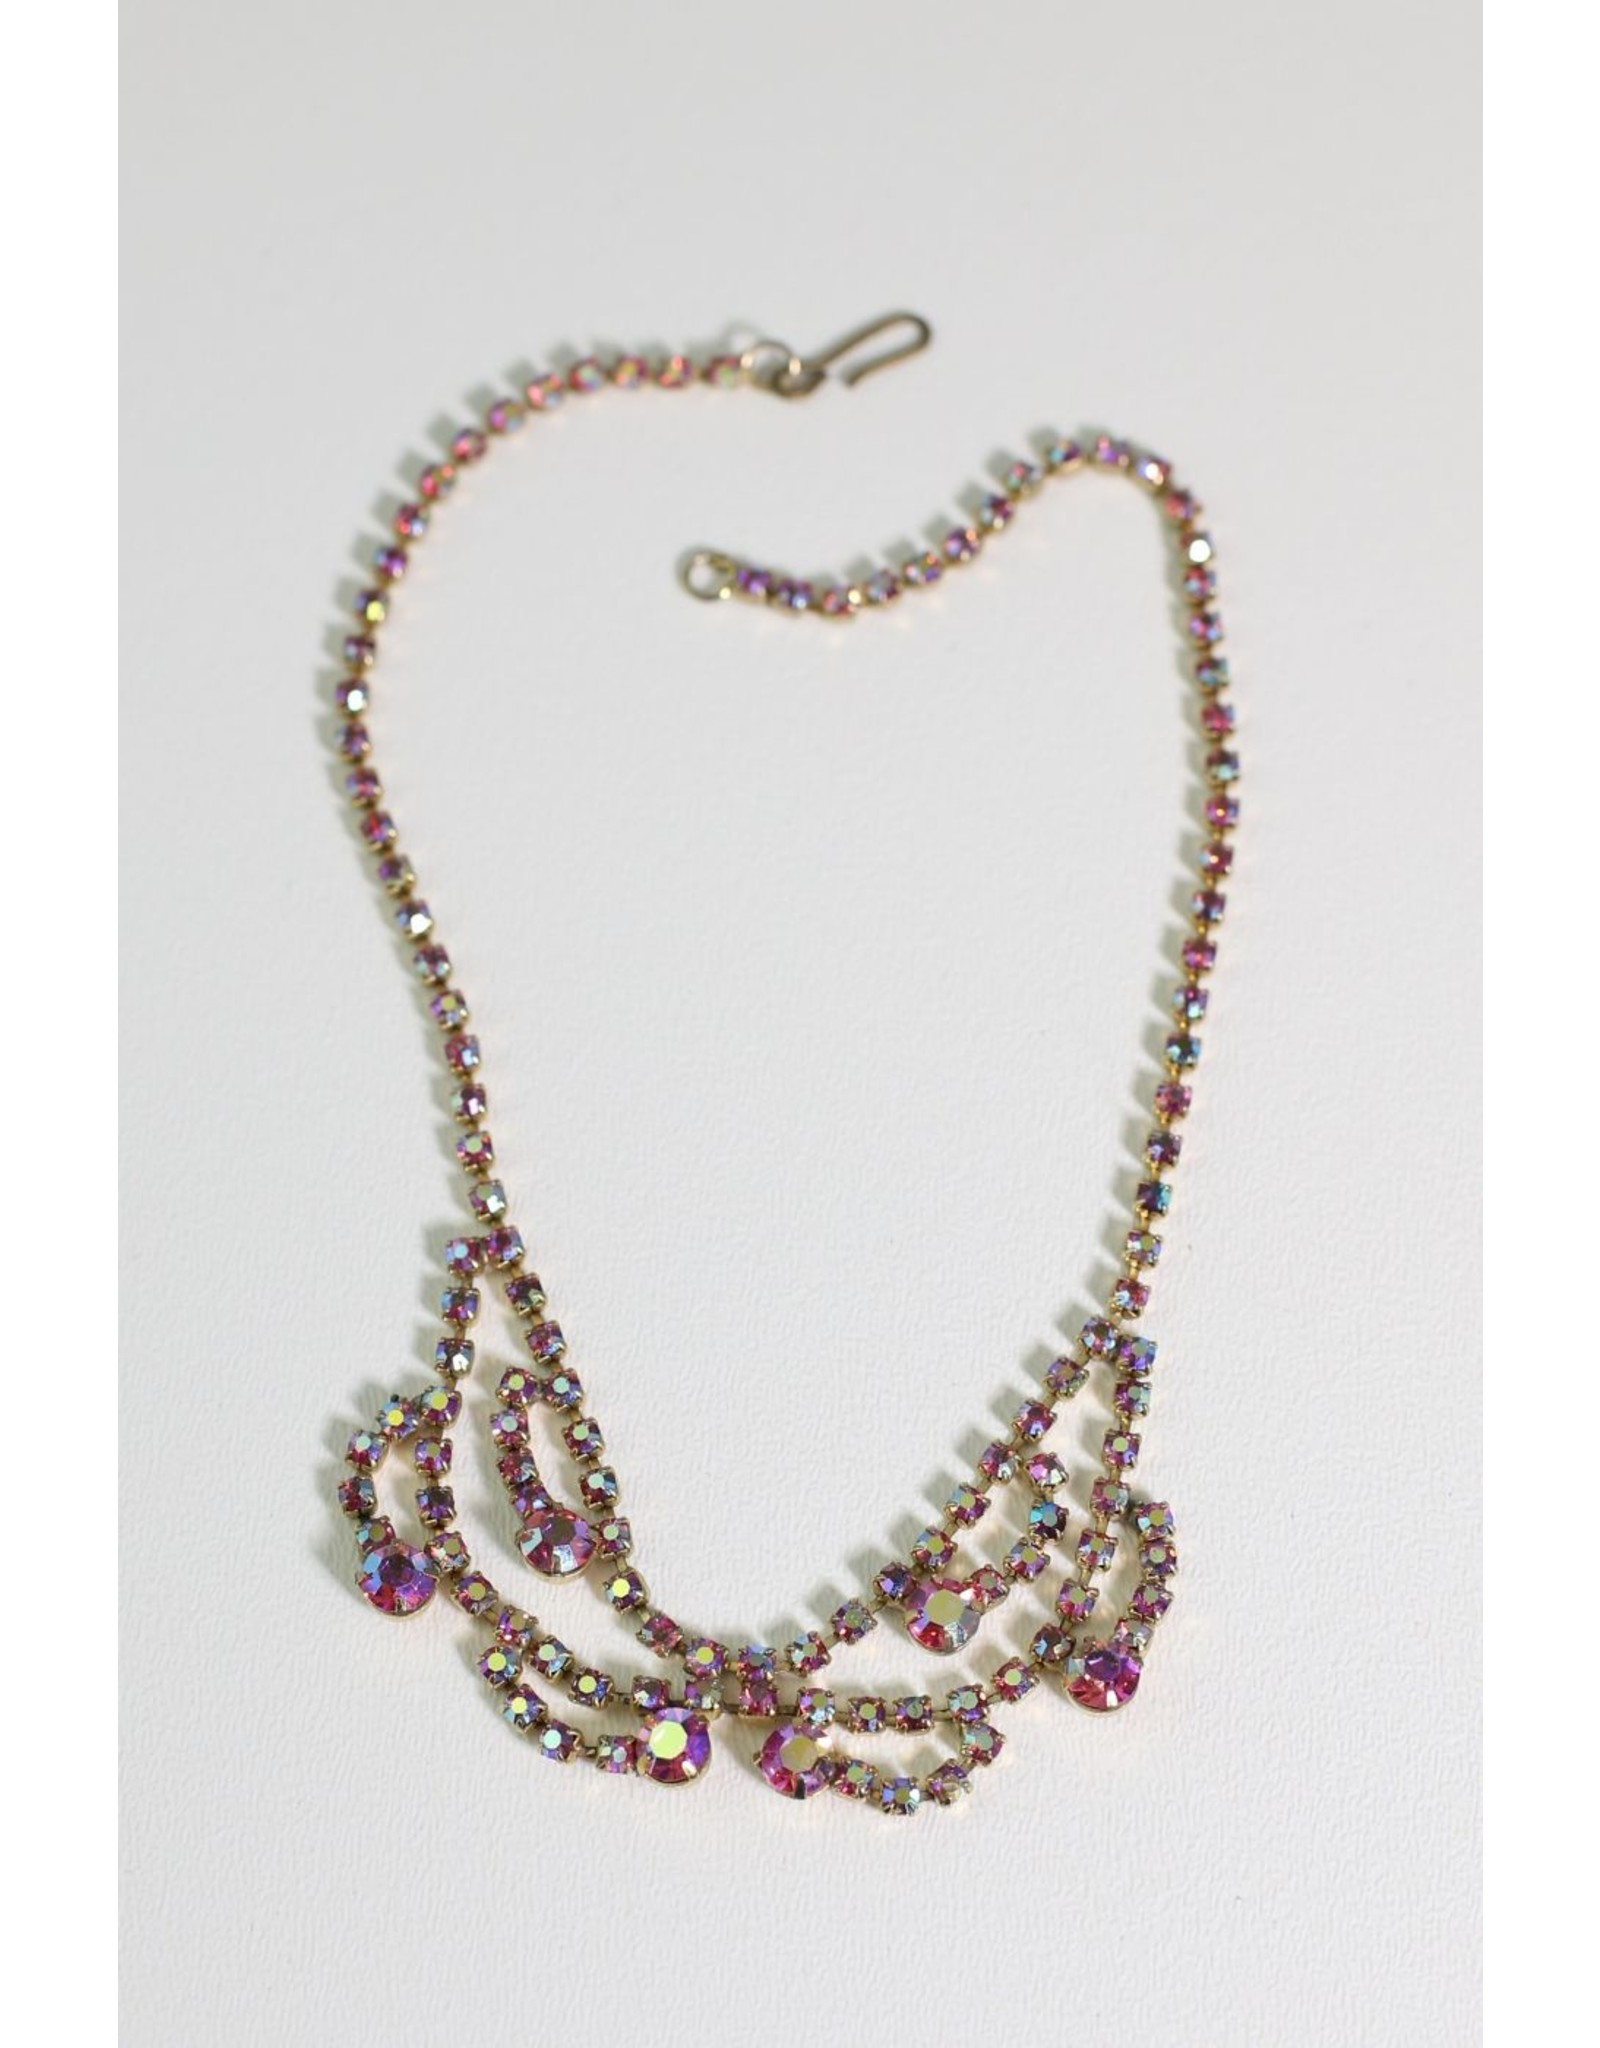 1950's Pink AB Rhinestone Necklace